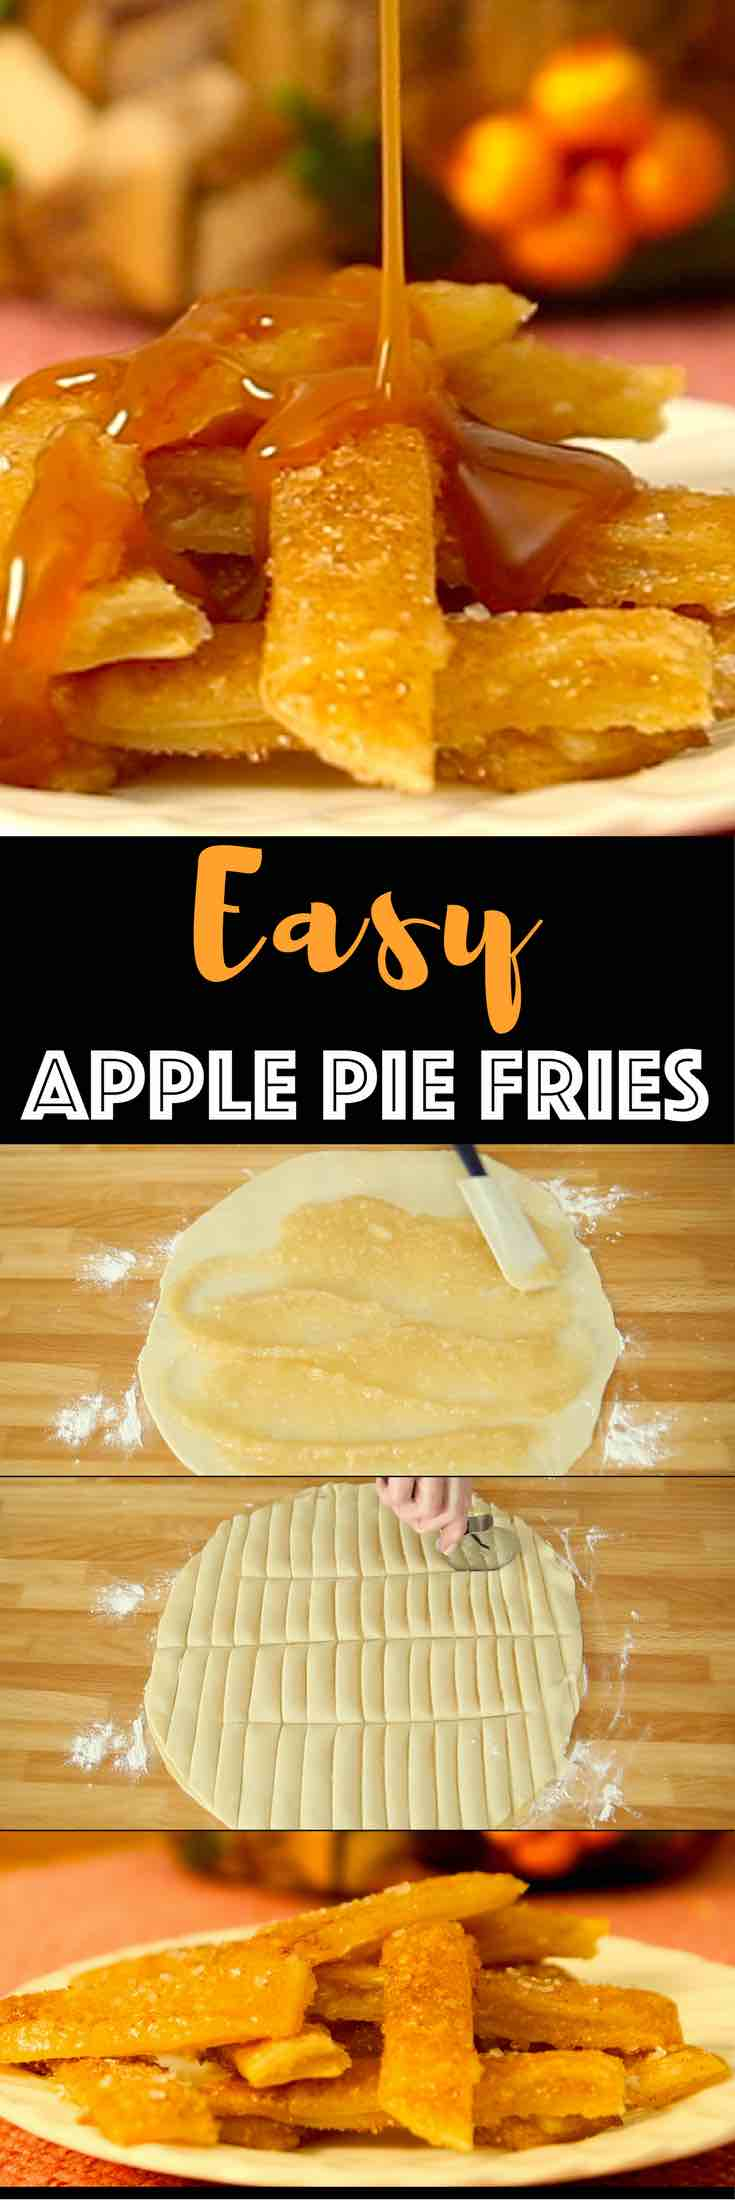 The Most Incredible Baked Apple Pie Fries: Delicious, crispy and healthy apple fries tossed with cinnamon sugar and baked to perfection golden brown color, drizzled with caramel sauce! All you need is a few simple ingredients: store bought pie crust, apple pie filling, cinnamon and sugar, nutmeg and milk. Quick and easy recipe, party desserts. Vegetarian. Video recipe.   Tipbuzz.com